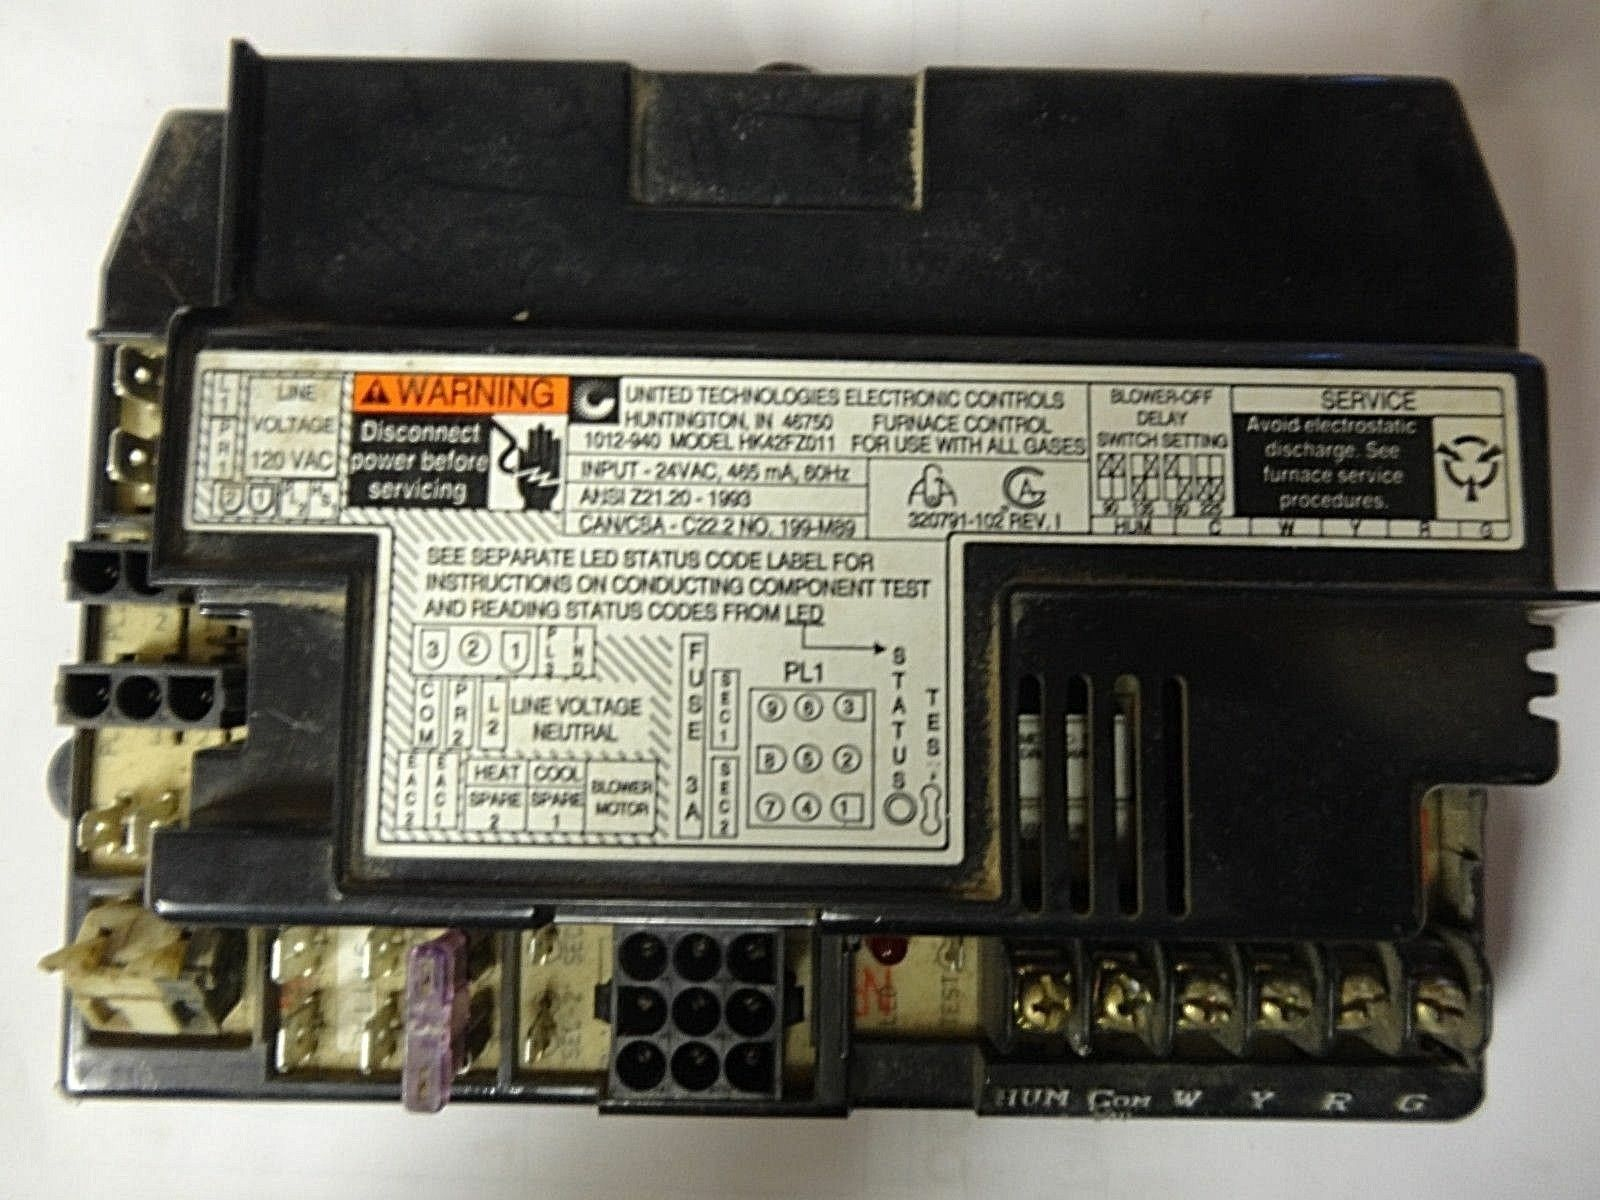 carrier bryant furnace control board hk42fz011 for sale online ebayControl Circuit Board Hk42fz011 Replacement Household Furnace Control #17